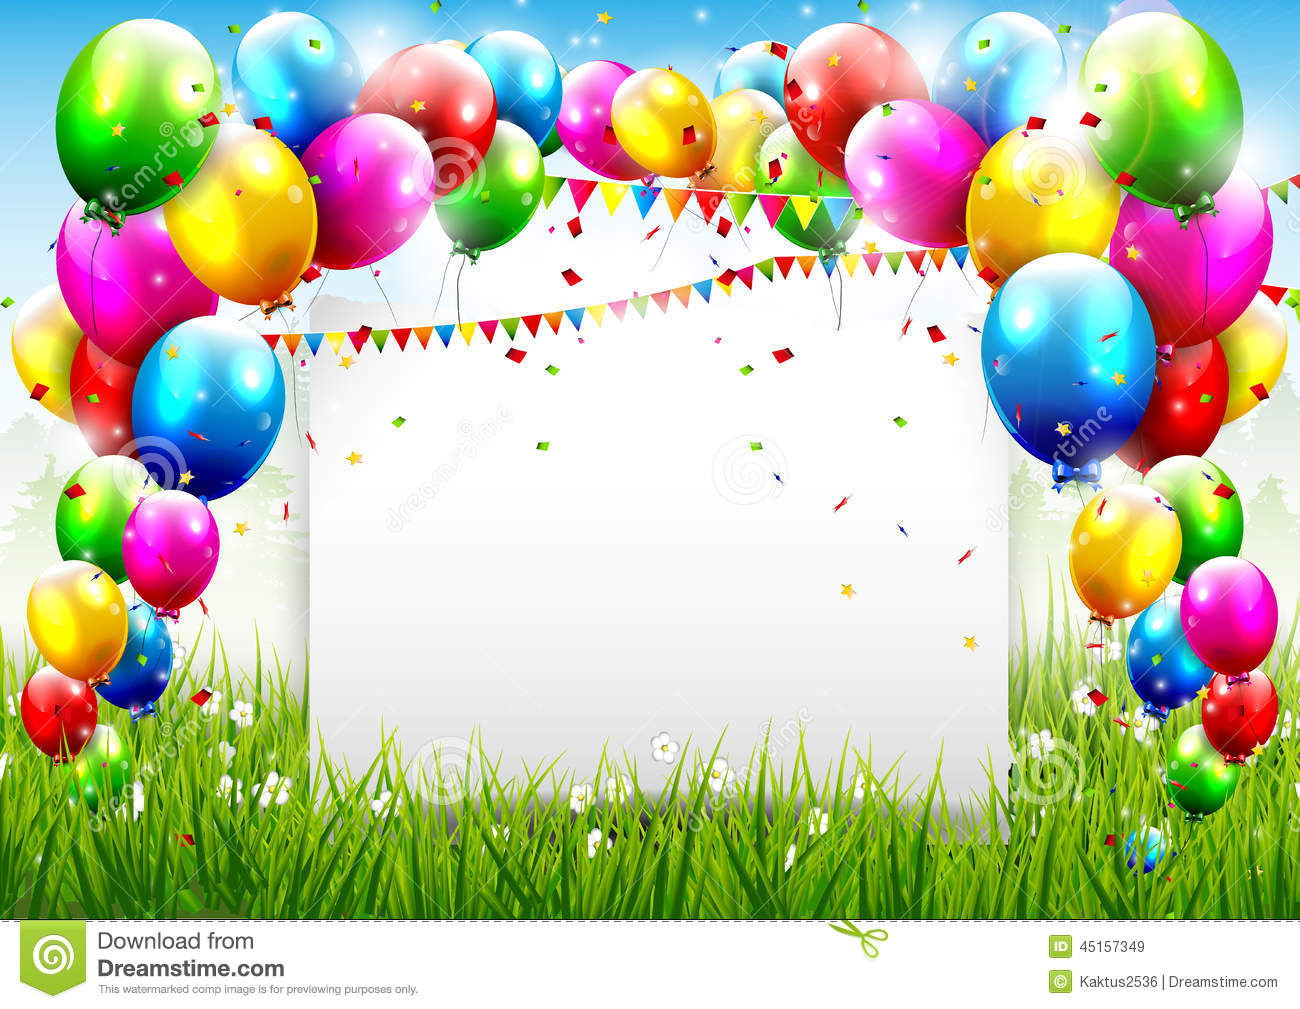 happy 1st birthday background ; birthday-background-colorful-place-textn-45157349